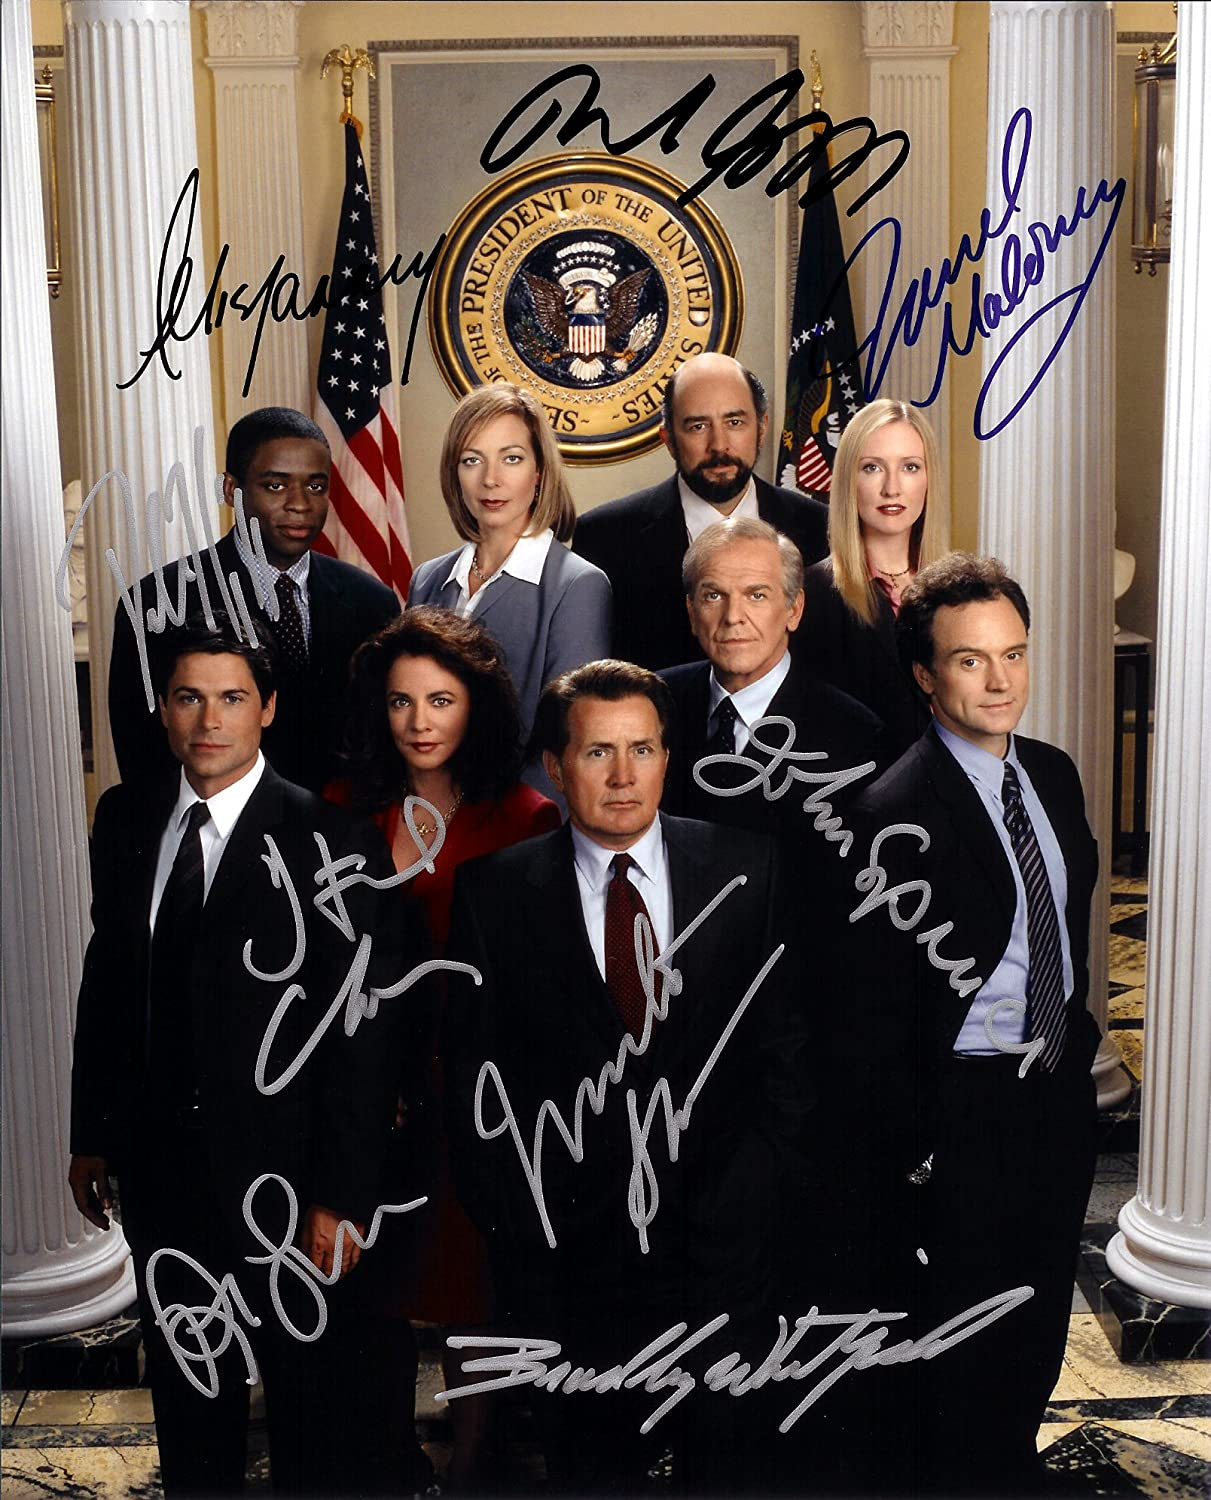 The West Wing TV Series Cast Signed Autographed 8 X 10 RP Photo - Mint Condition